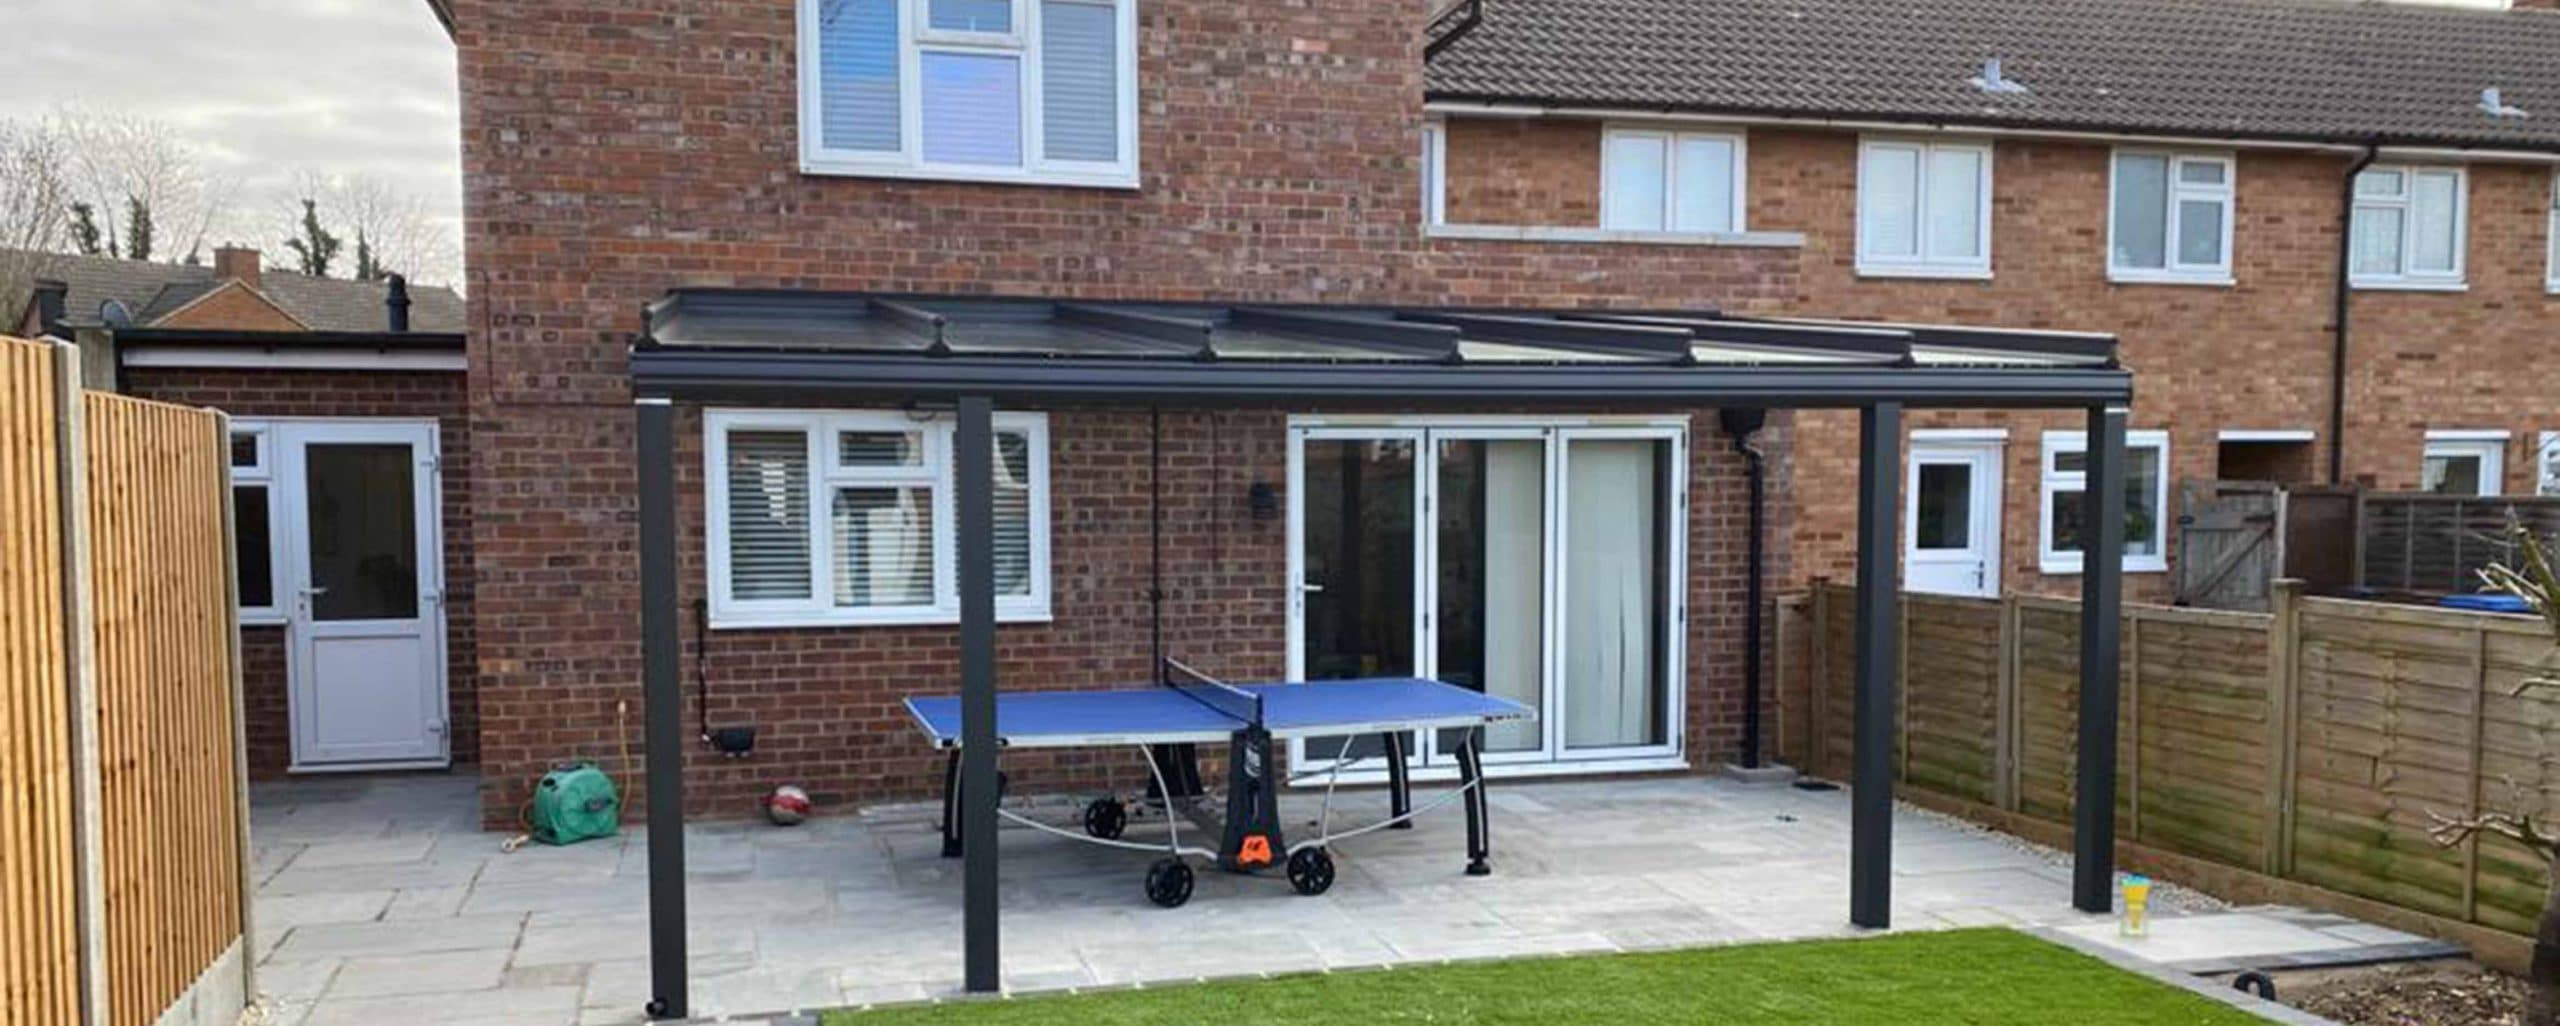 A Glass Veranda in Welwyn Garden City, Hertfordshire